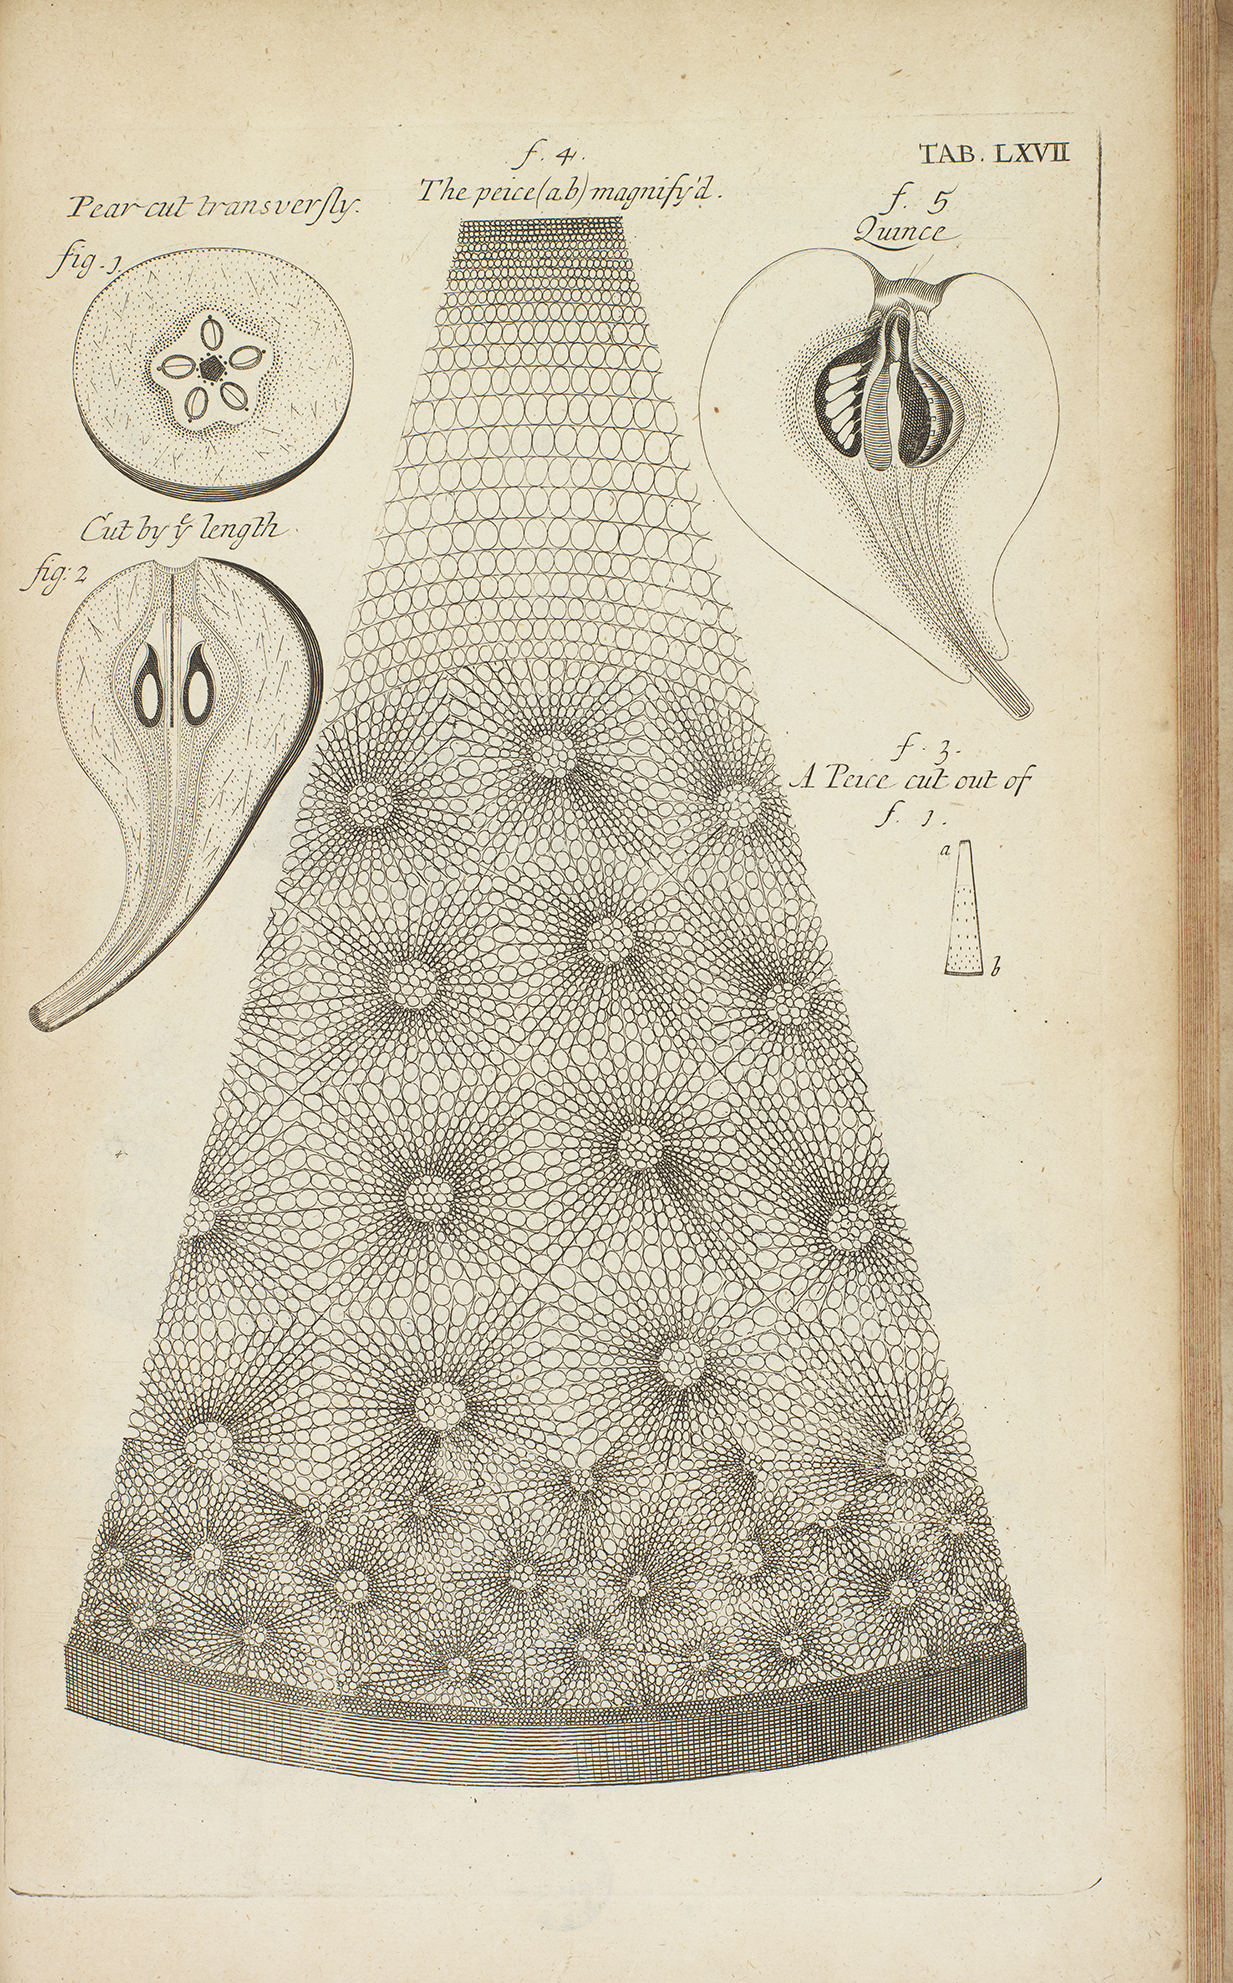 An illustration of an early microscopic image of a pear.